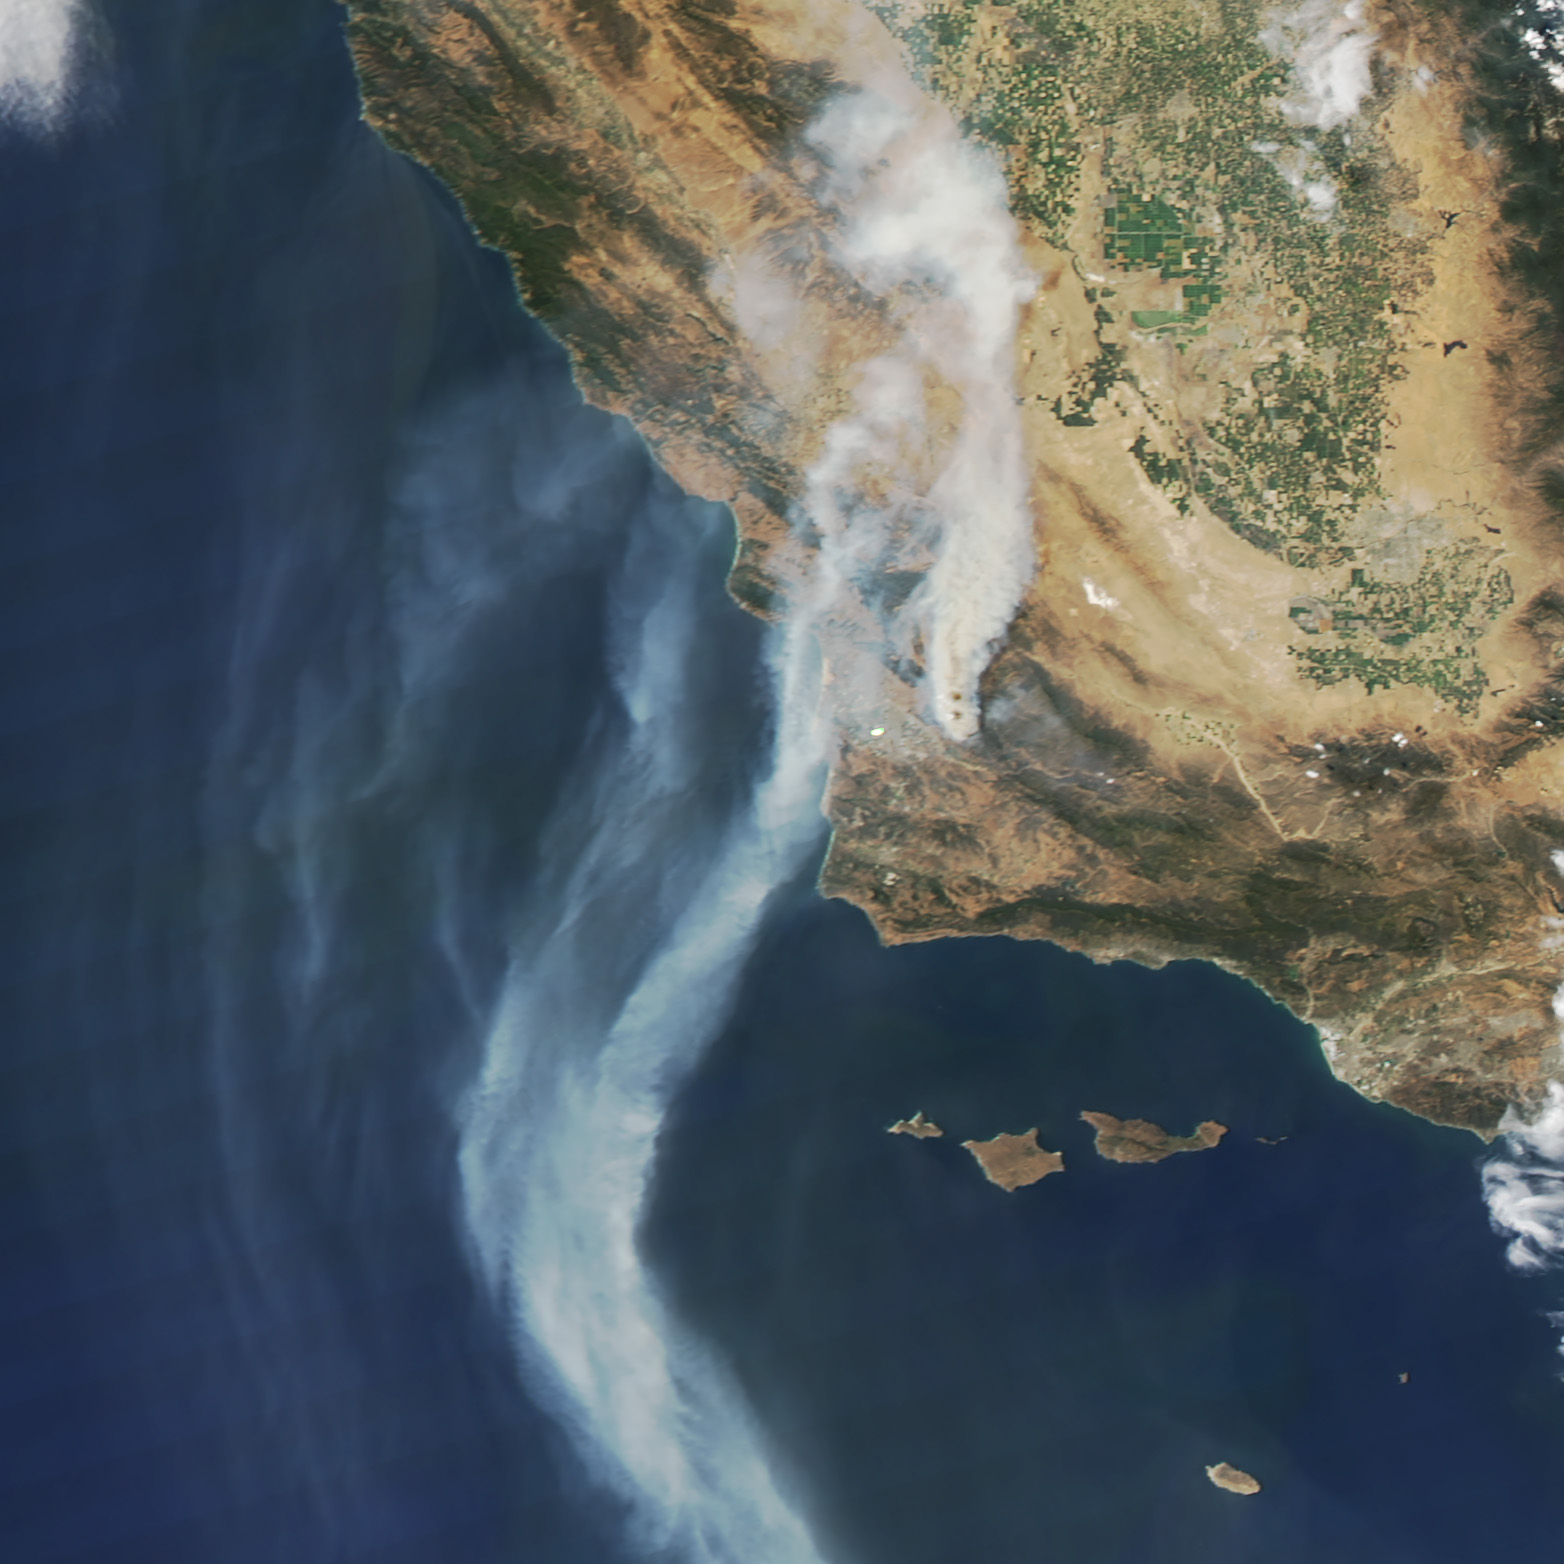 Today's Image of the Day comes thanks to the NASA Earth Observatory and features a look at wildfires burning across California.